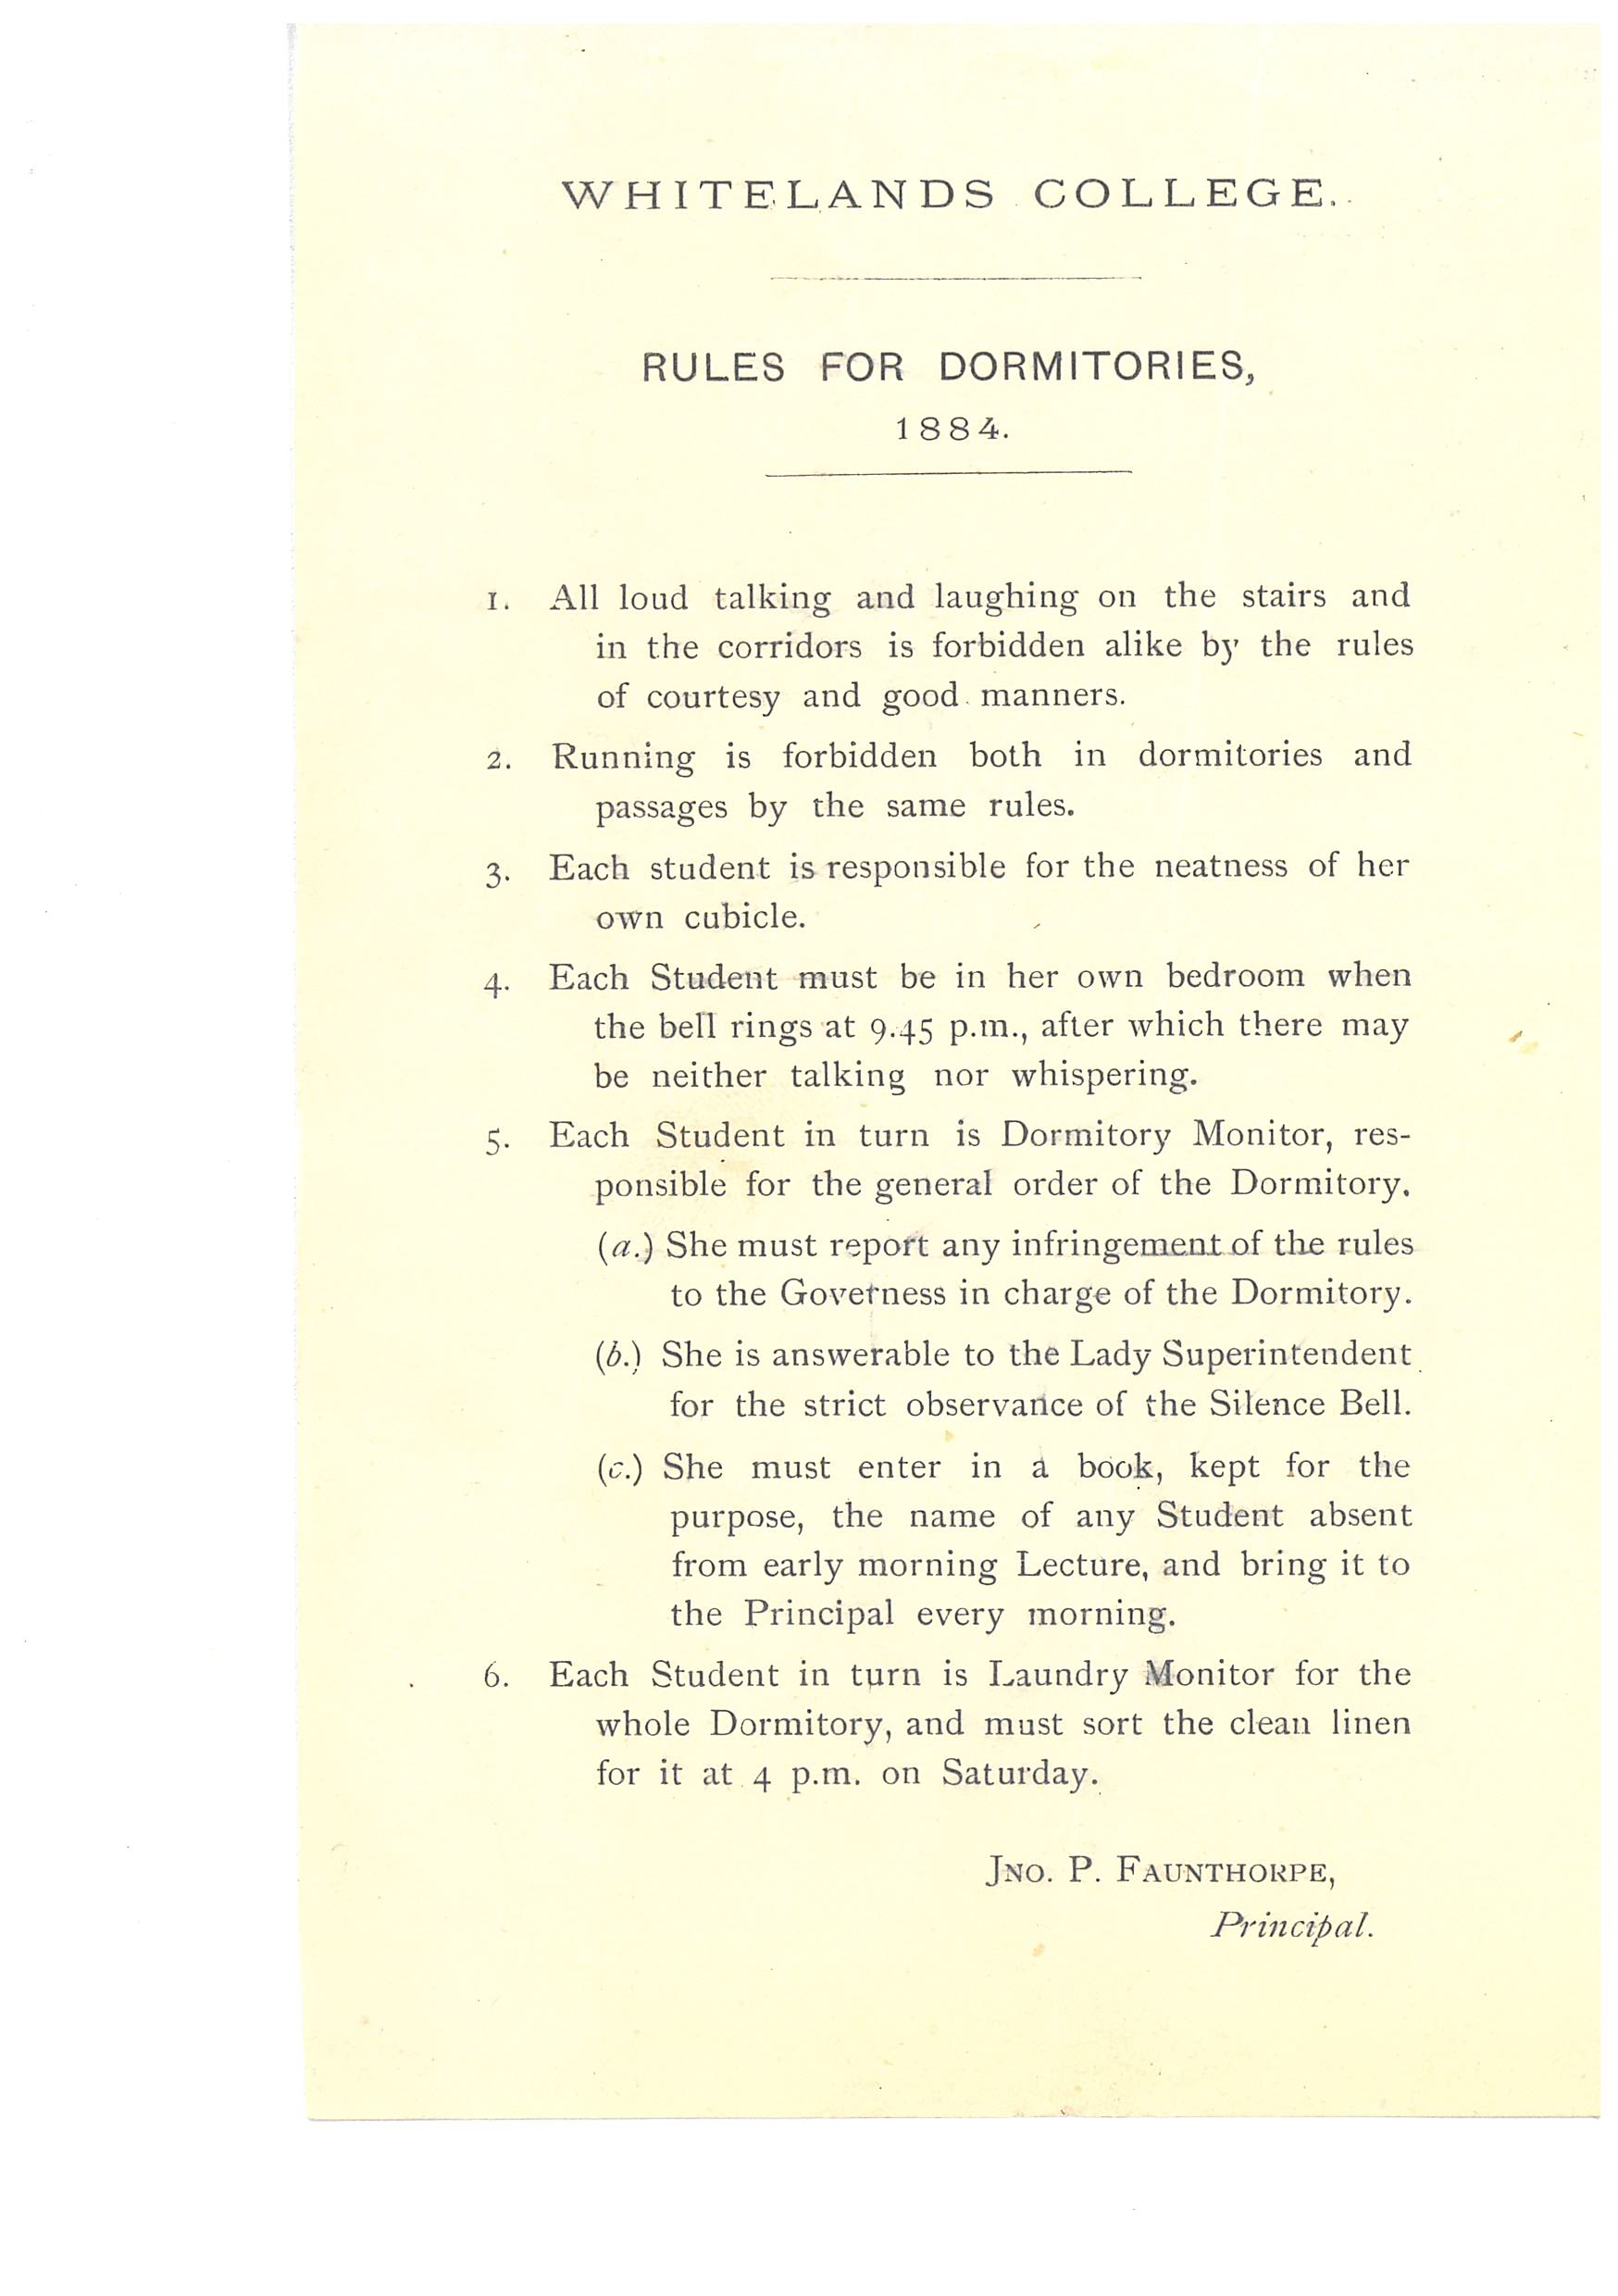 Document from Whitelands Archive: Whitelands Dormitory rules 1884